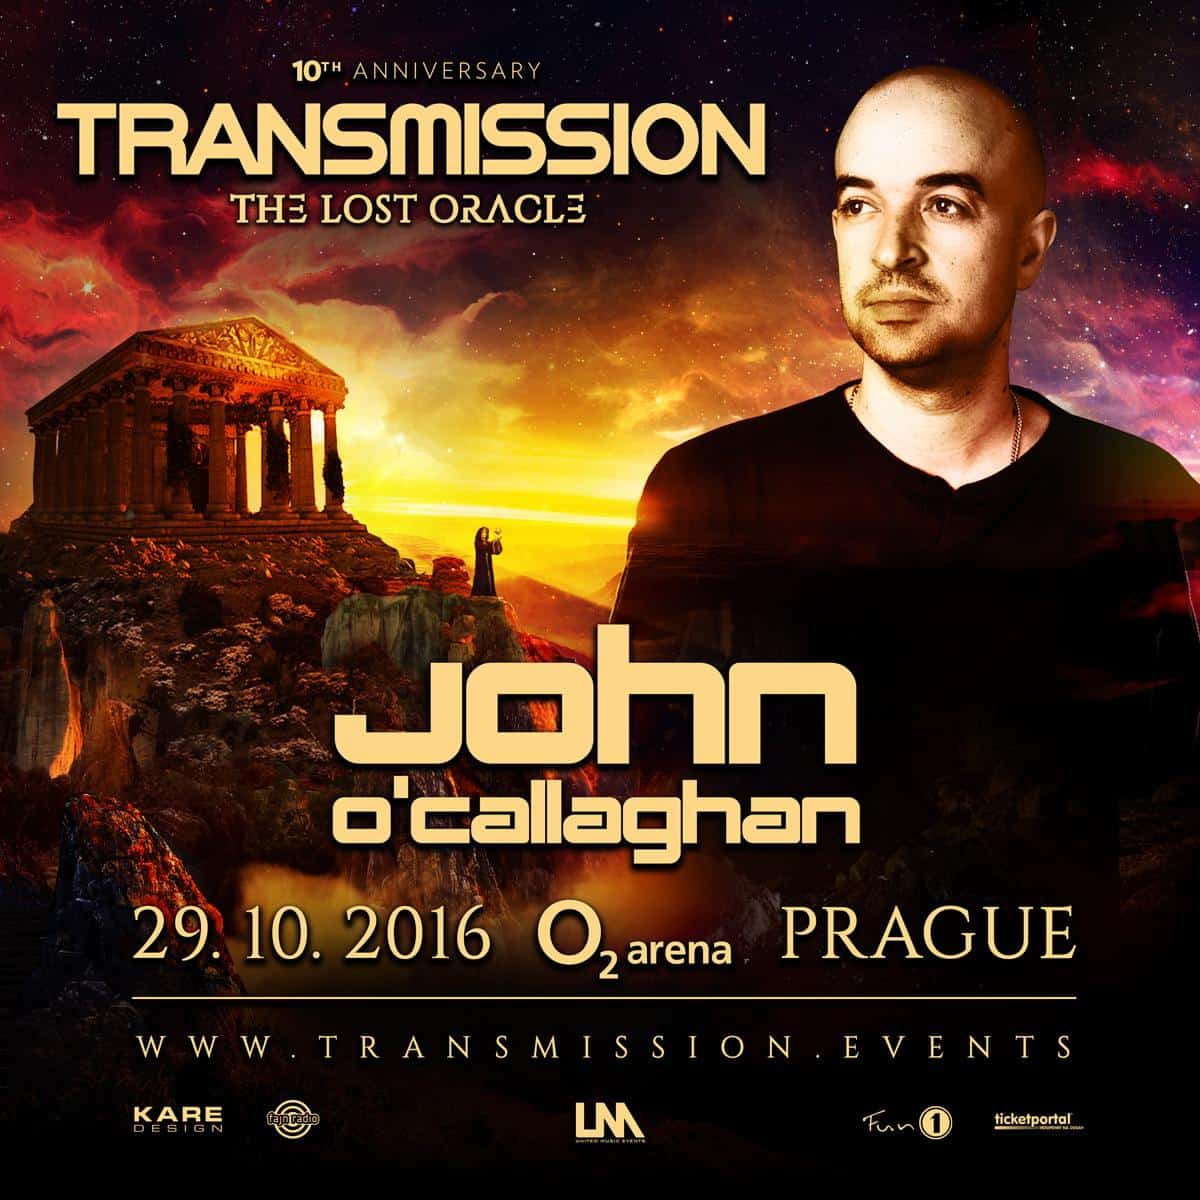 John O'Callaghan live at Transmission - The Lost Oracle (29.10.2016) @ Prague, Czech Republic